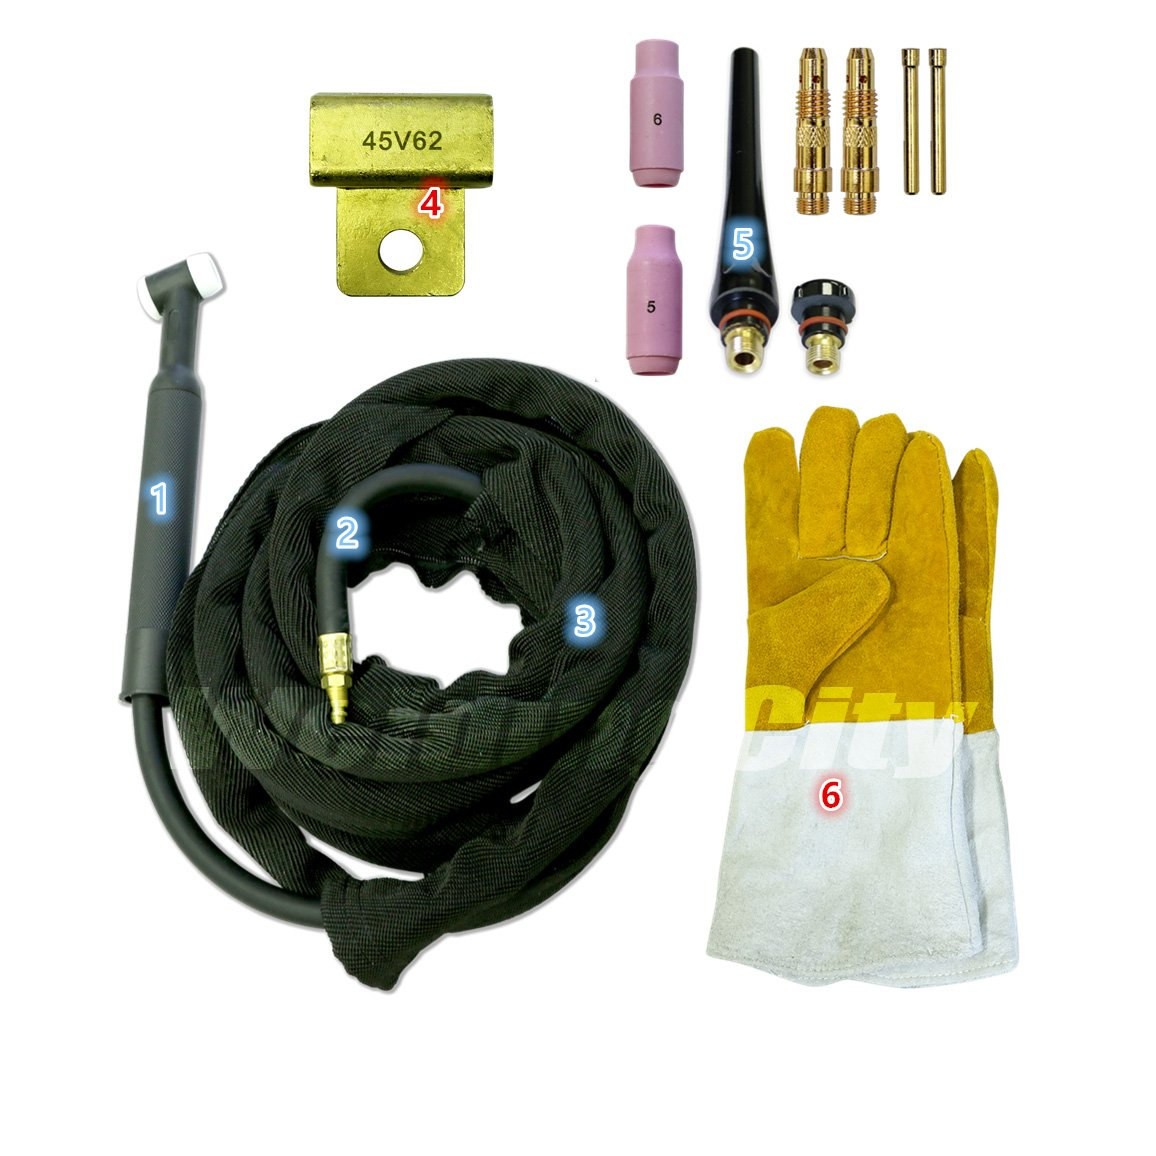 WeldingCity WP-26FV-25R Complete Ready-to-Go Package Flex-Head Gas-Valve 25 200Amp Air-Cooled TIG Welding Torch